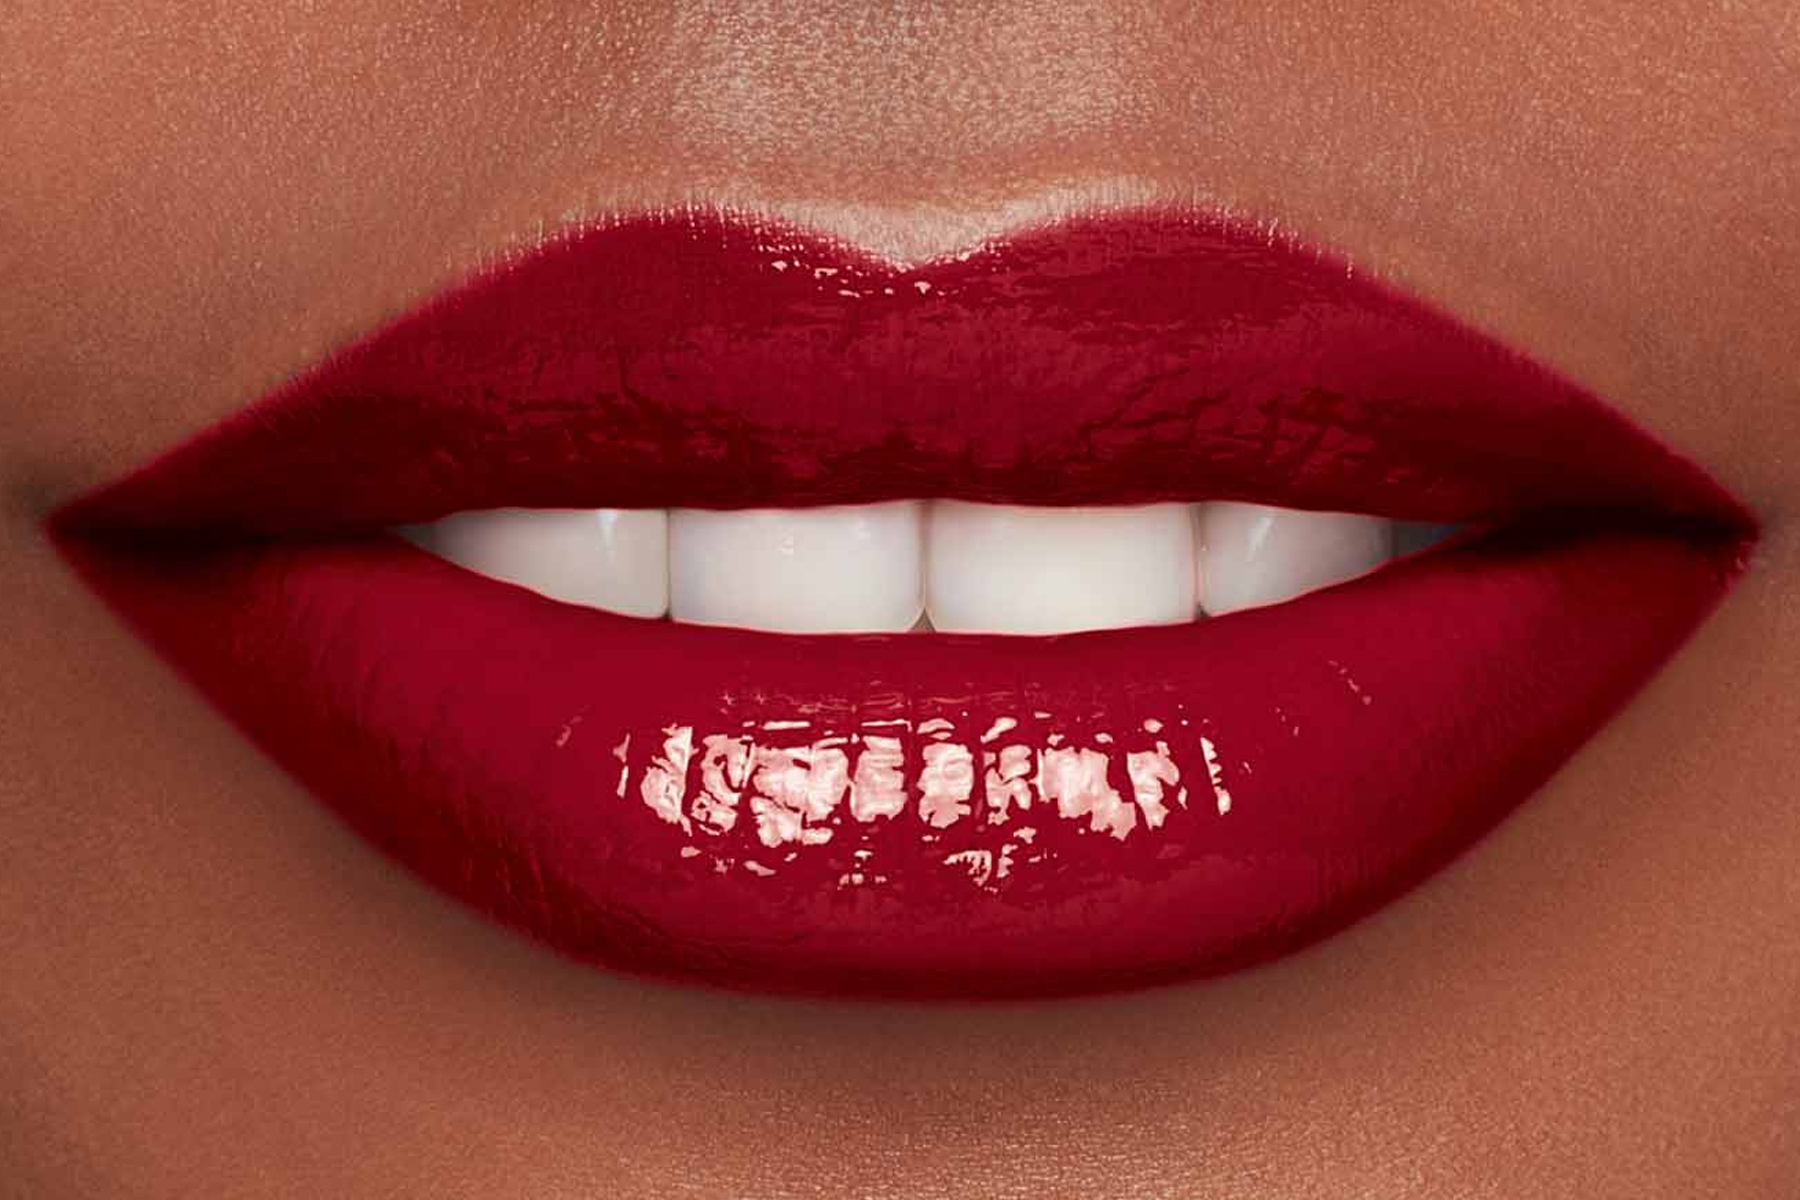 Clarins-lip-comfort-oil-intense-swatch-intense-burgundy